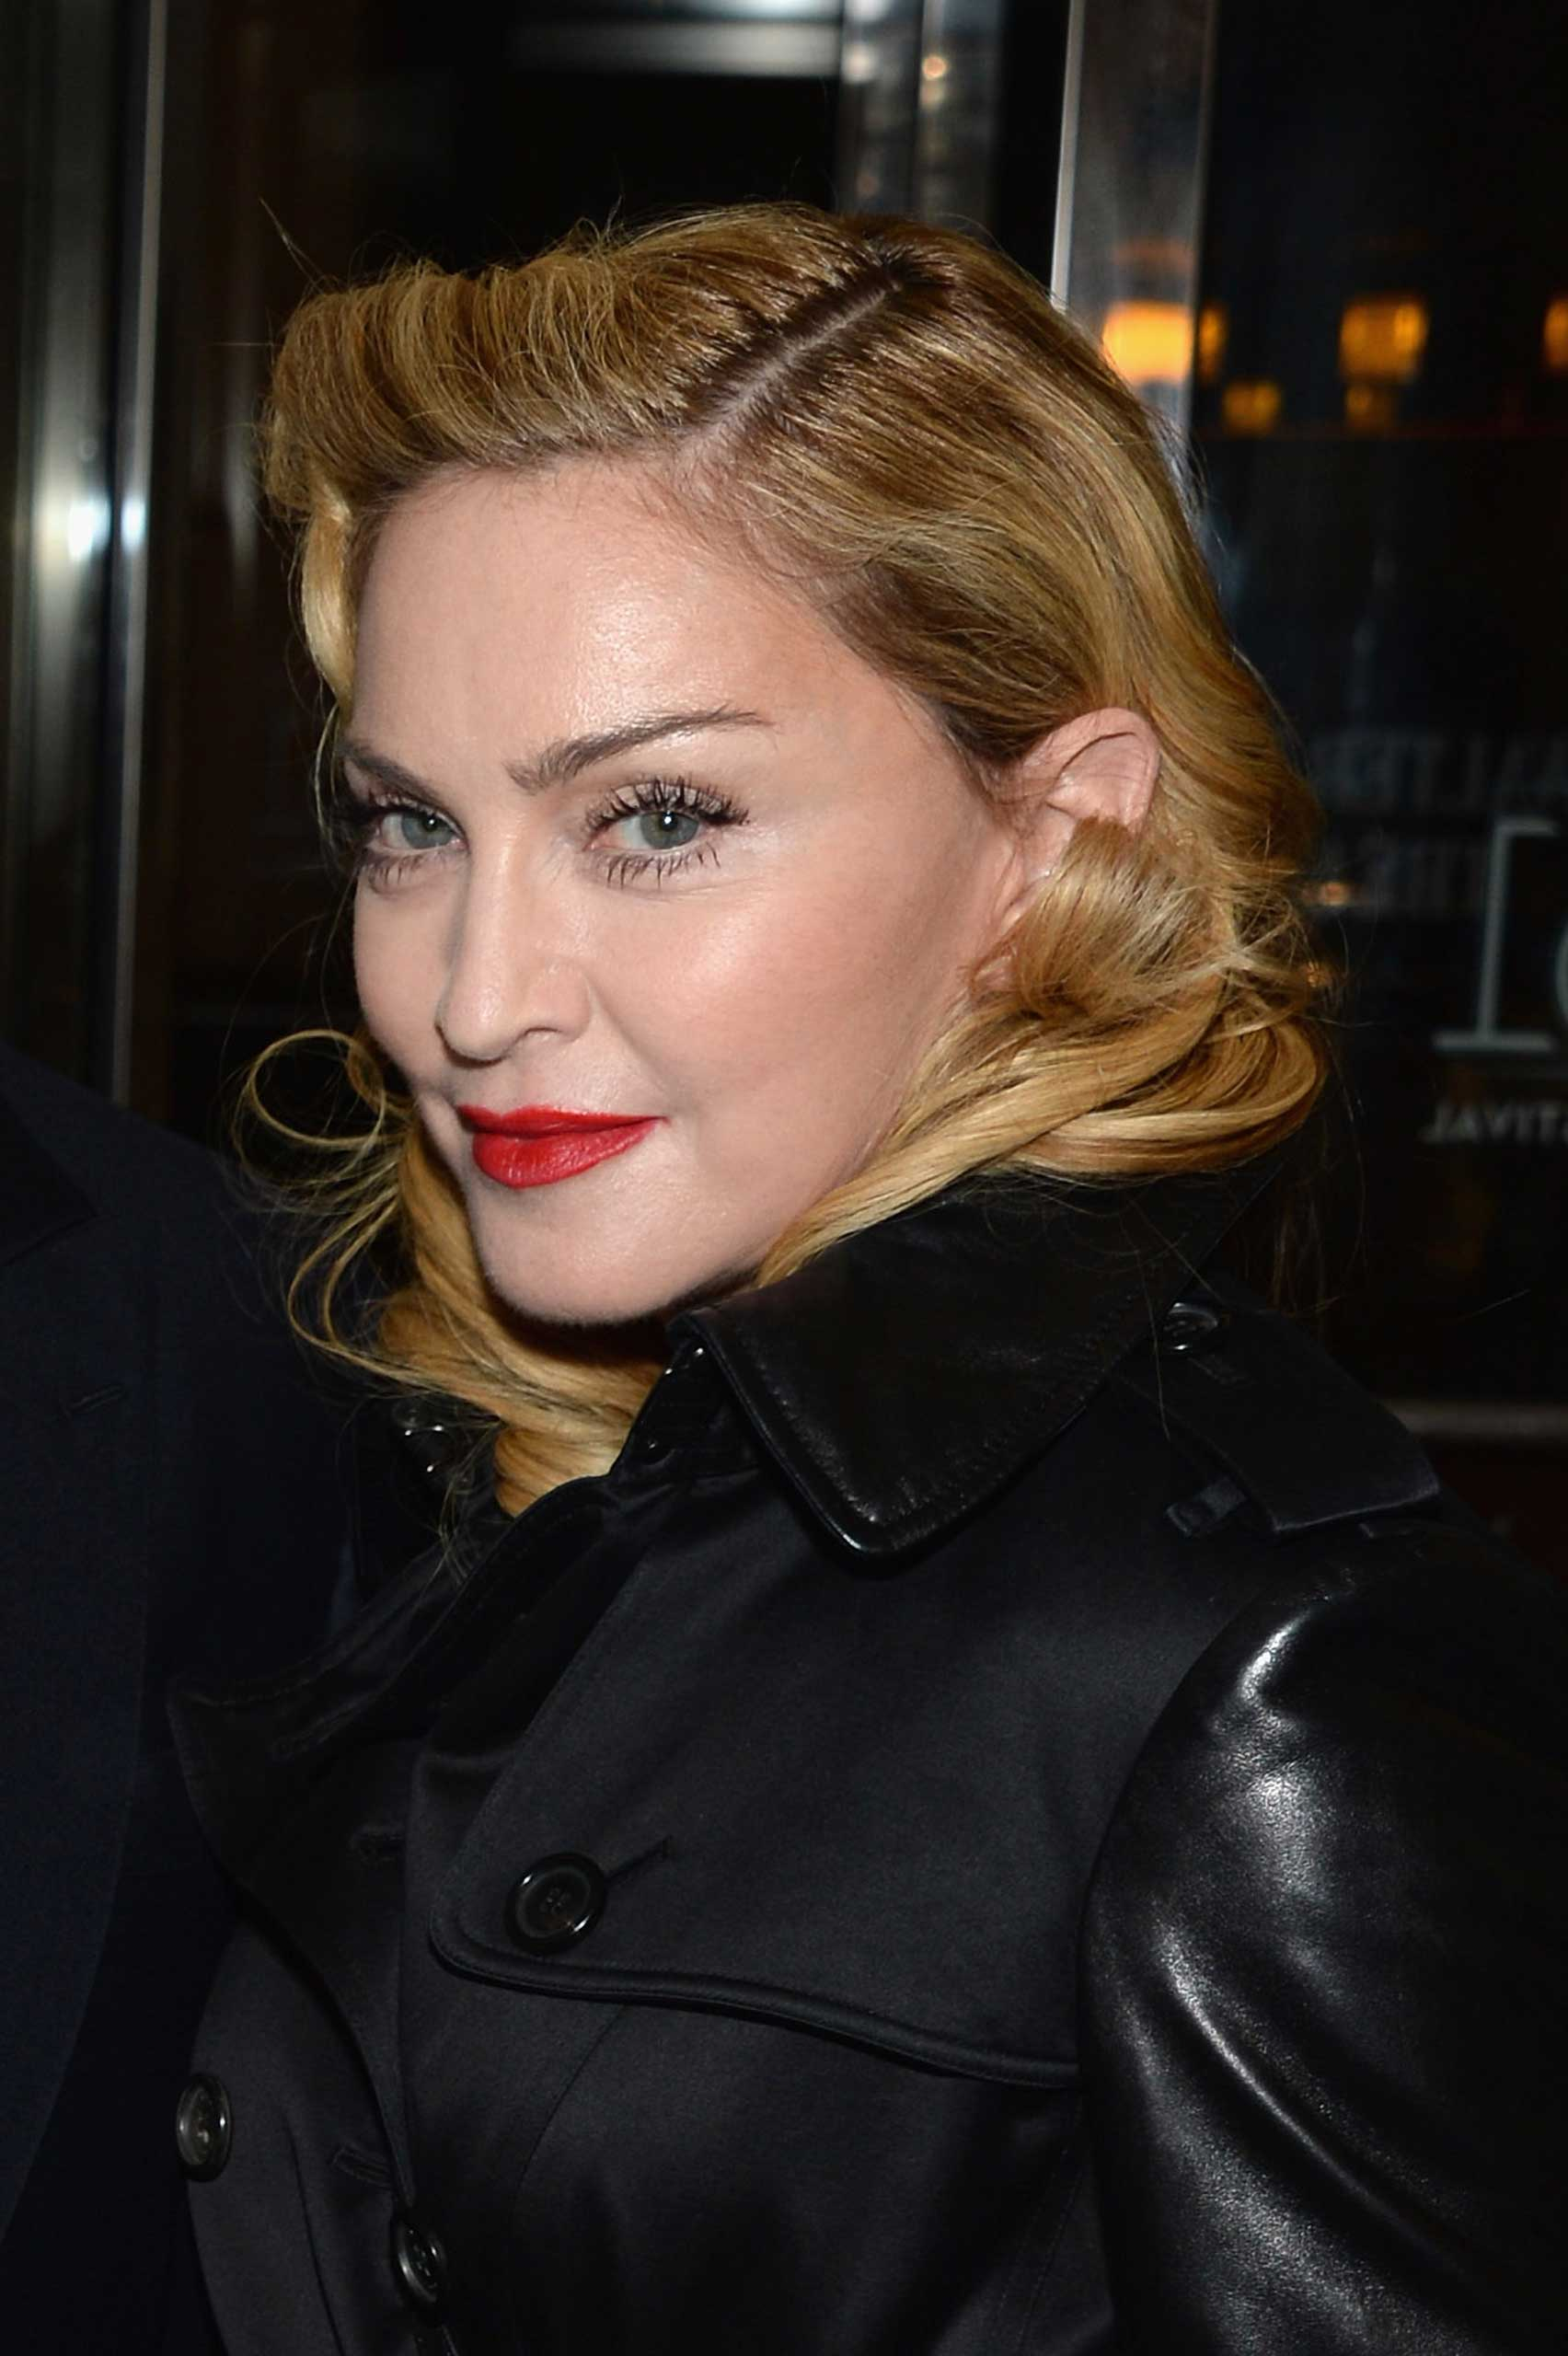 Madonna in New York in 2013.